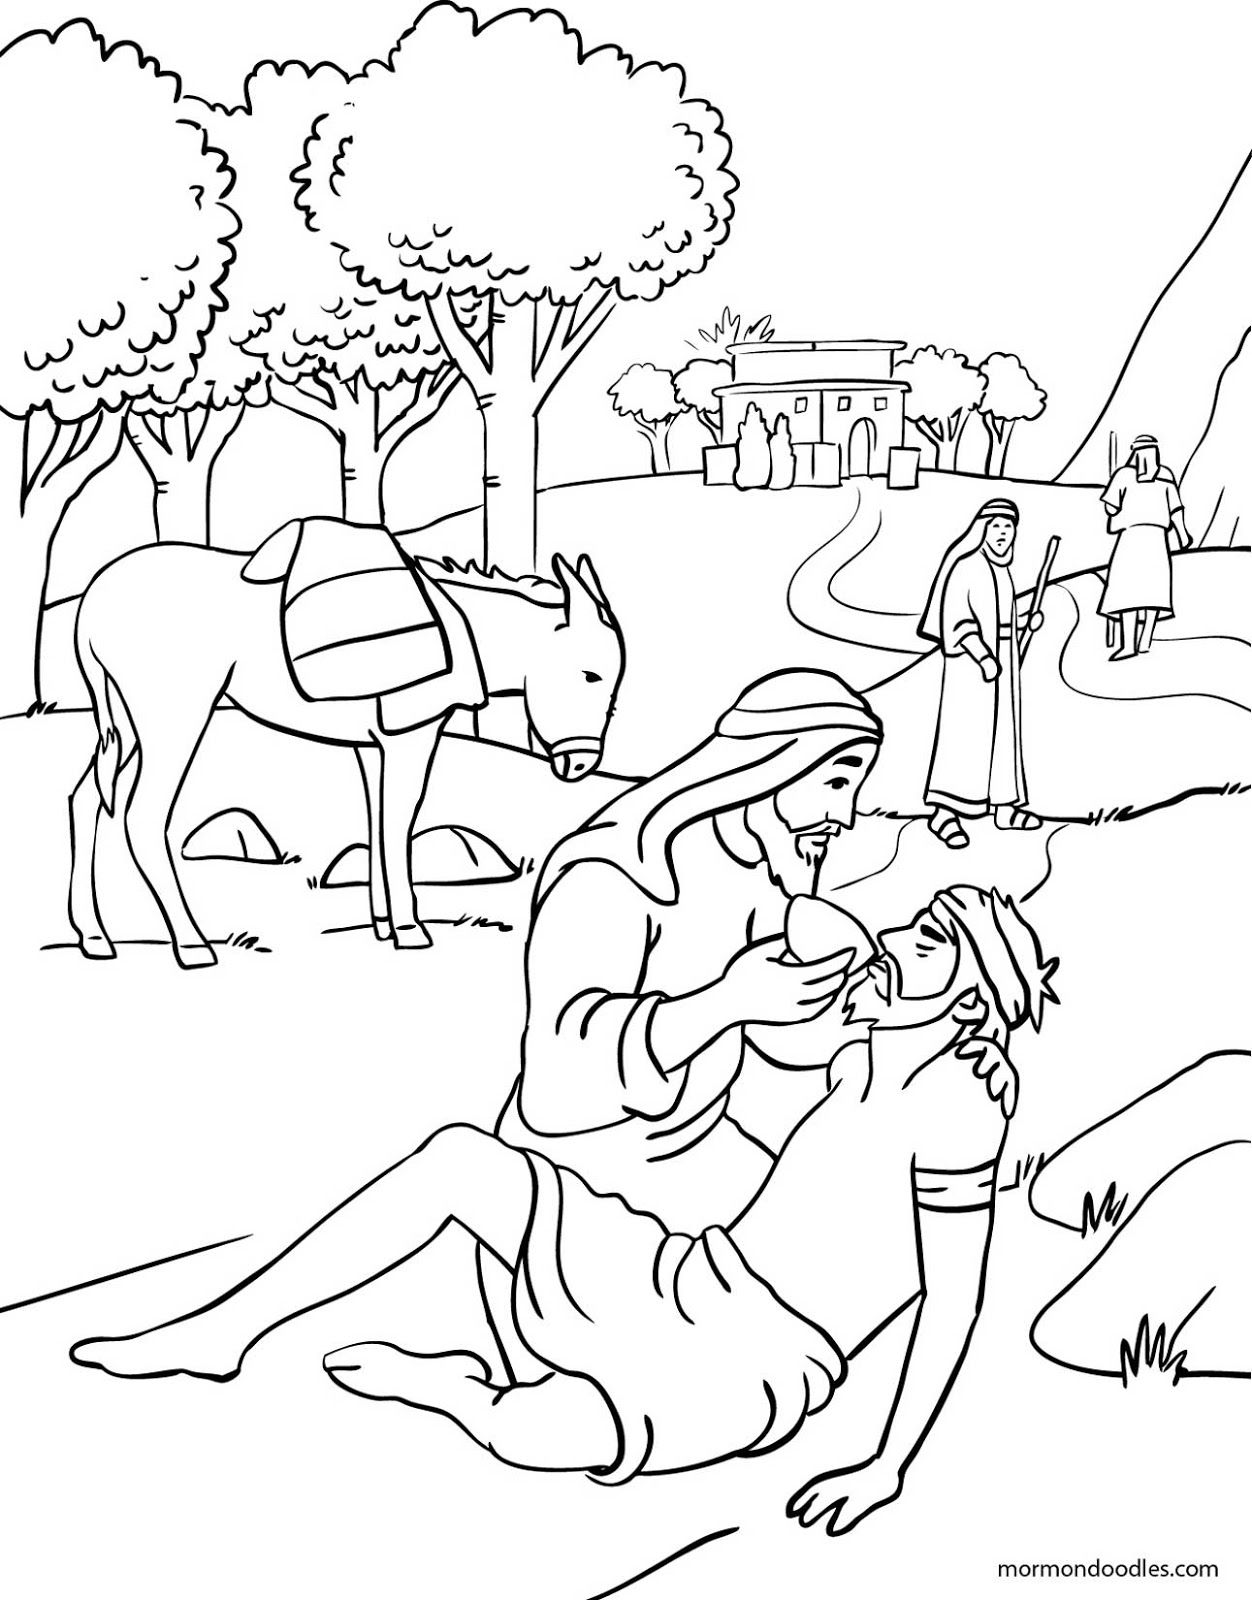 Mormon Doodles The Good Samaritan Coloring Page Good Samaritan